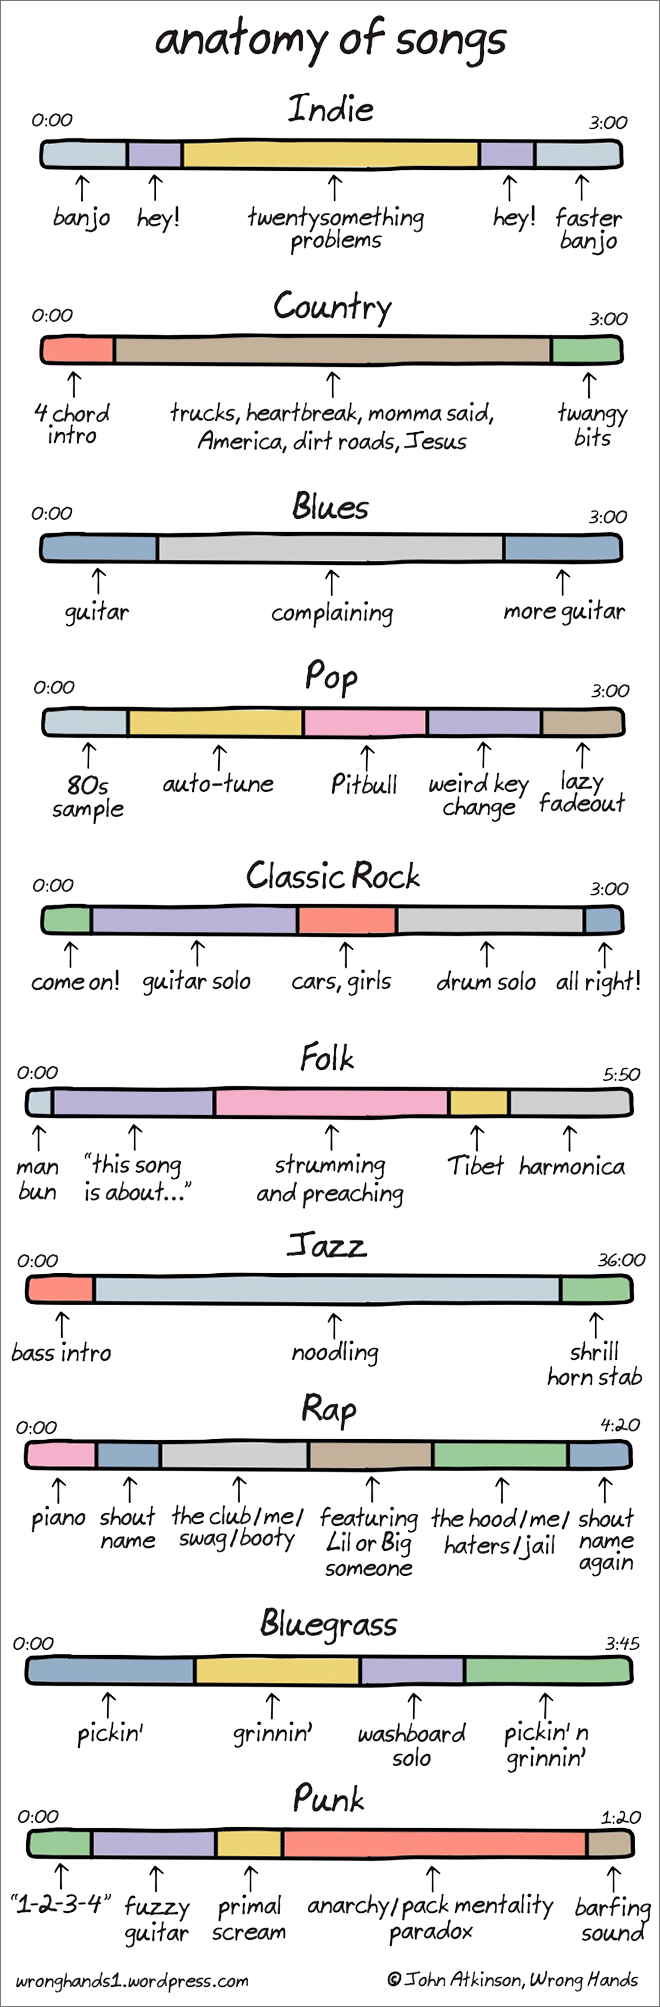 anatomy of songs band nerd music humor music memes music theory. Black Bedroom Furniture Sets. Home Design Ideas